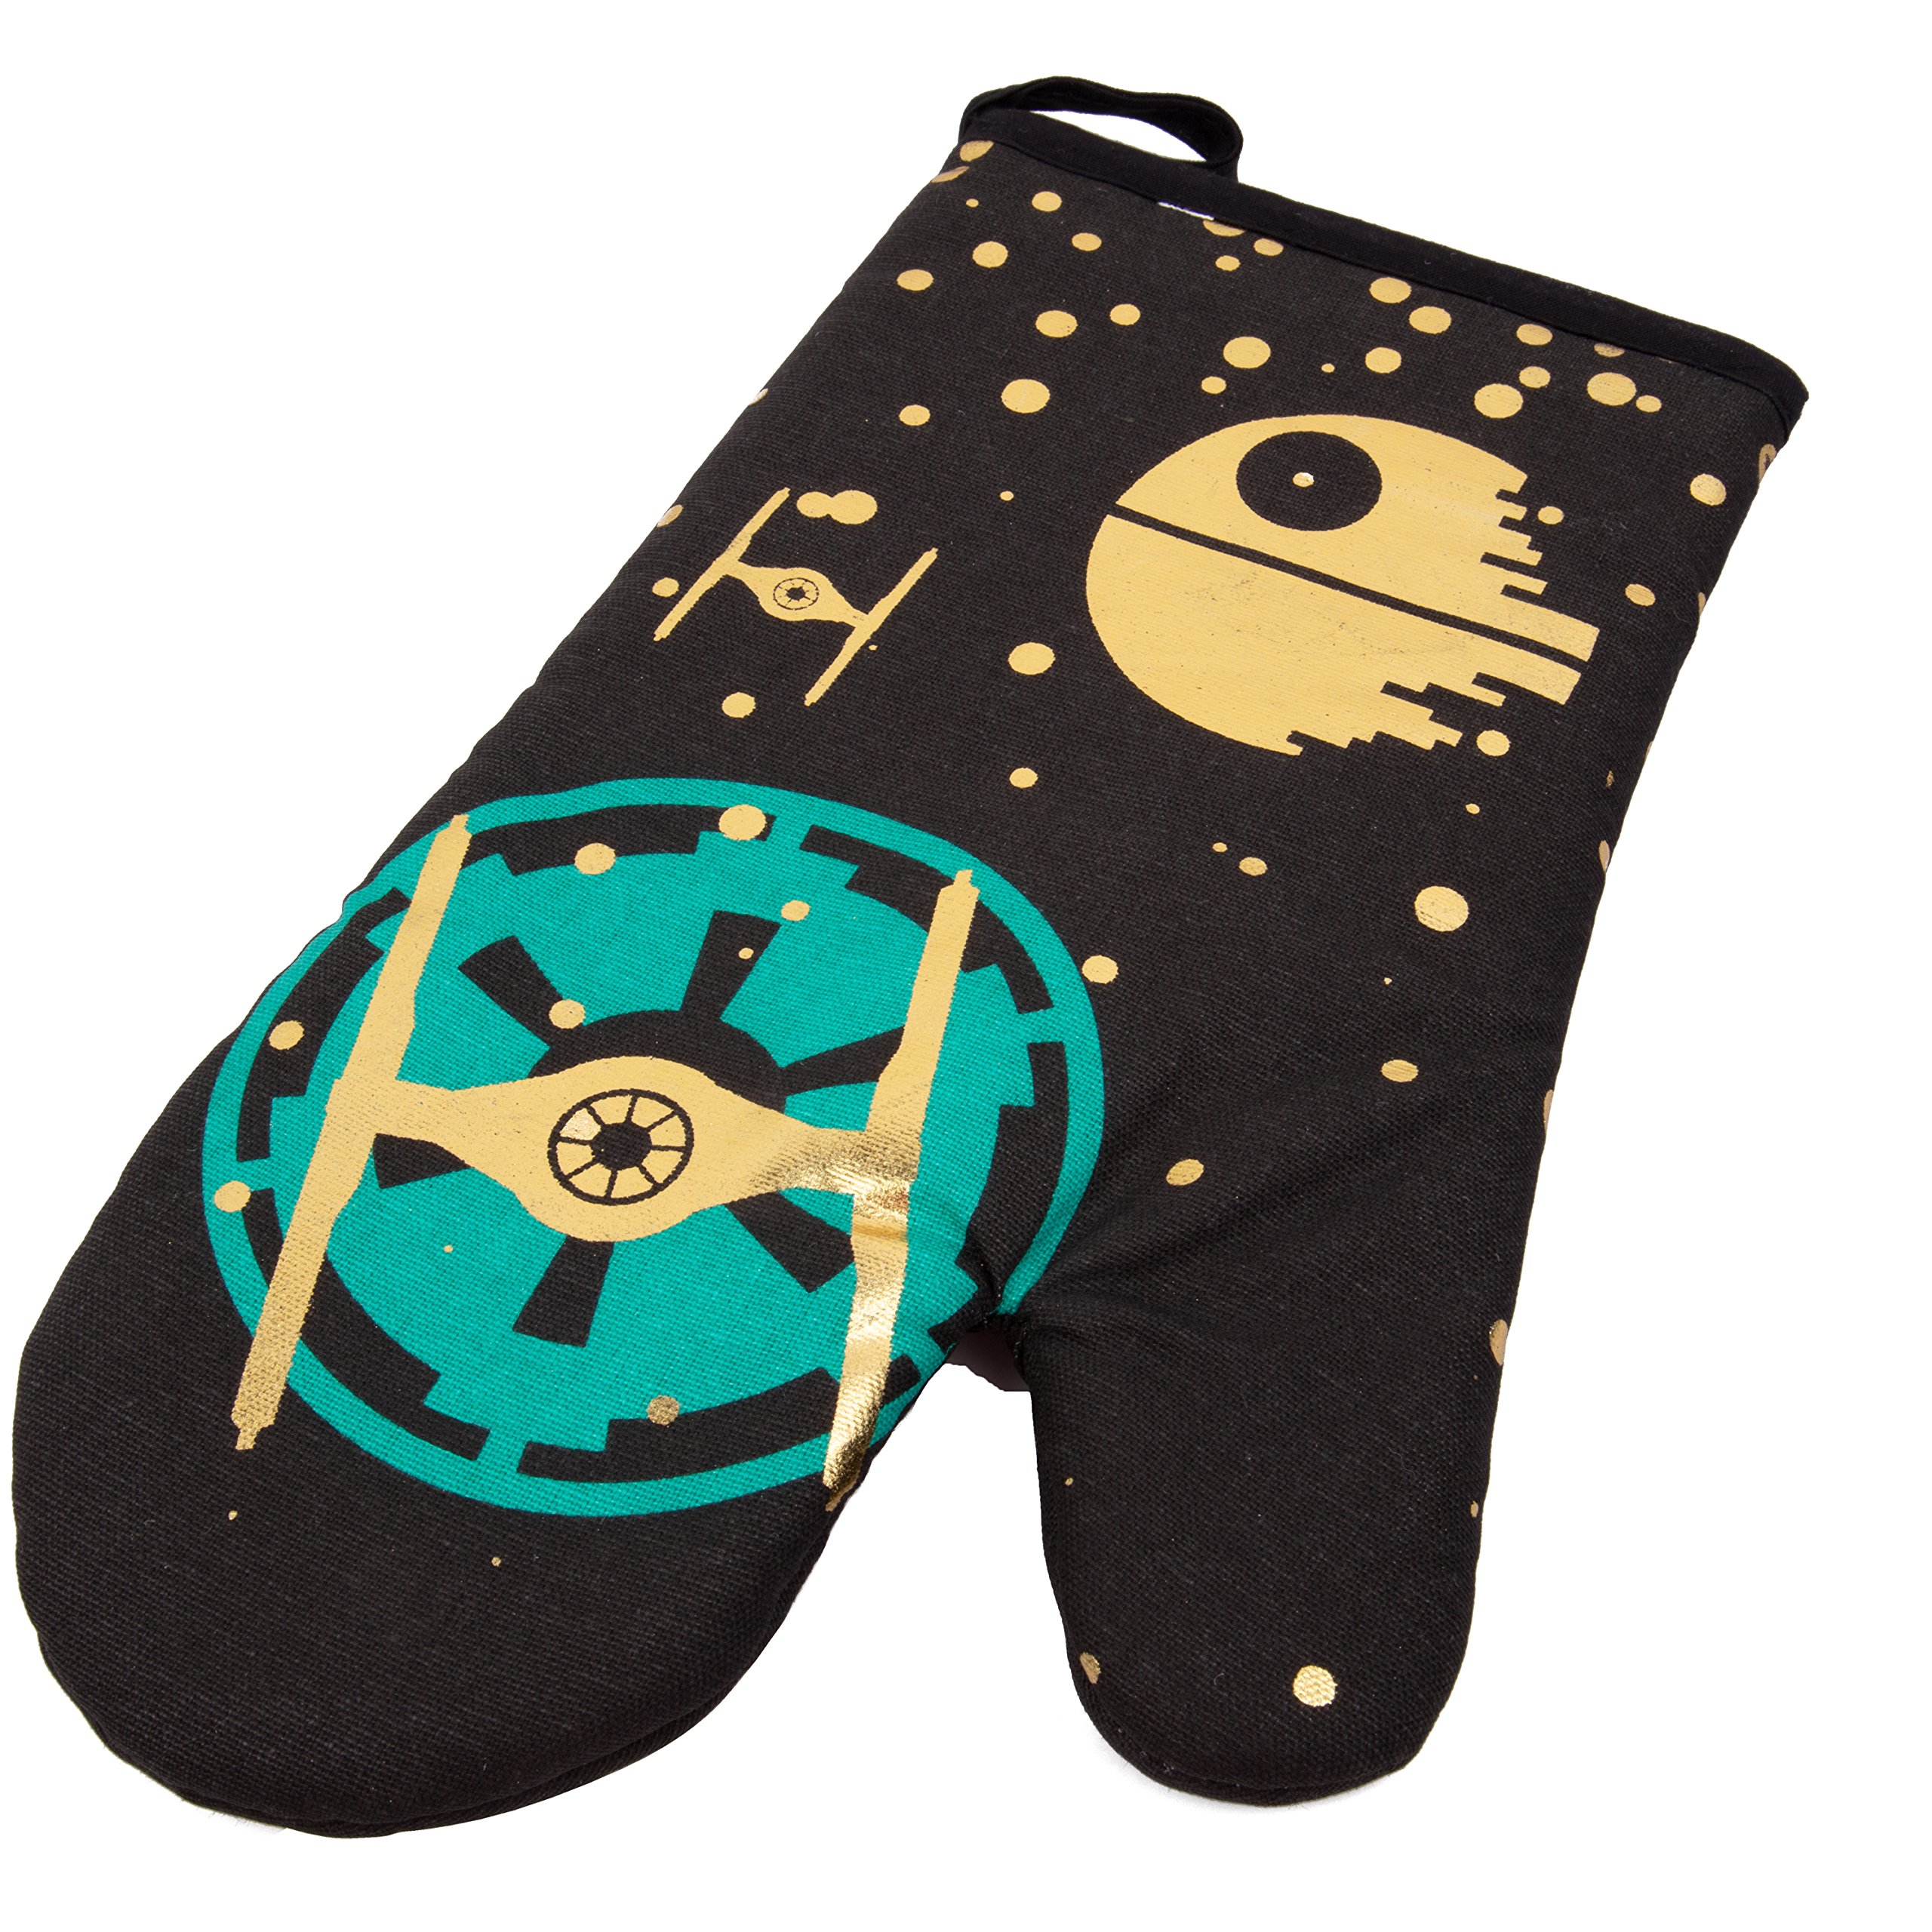 Seven20 Star Wars Oven Mitt - Cute Pinache Tie Fighter Design - Heat Resistant - 100% Cotton - Right Hand by Seven20